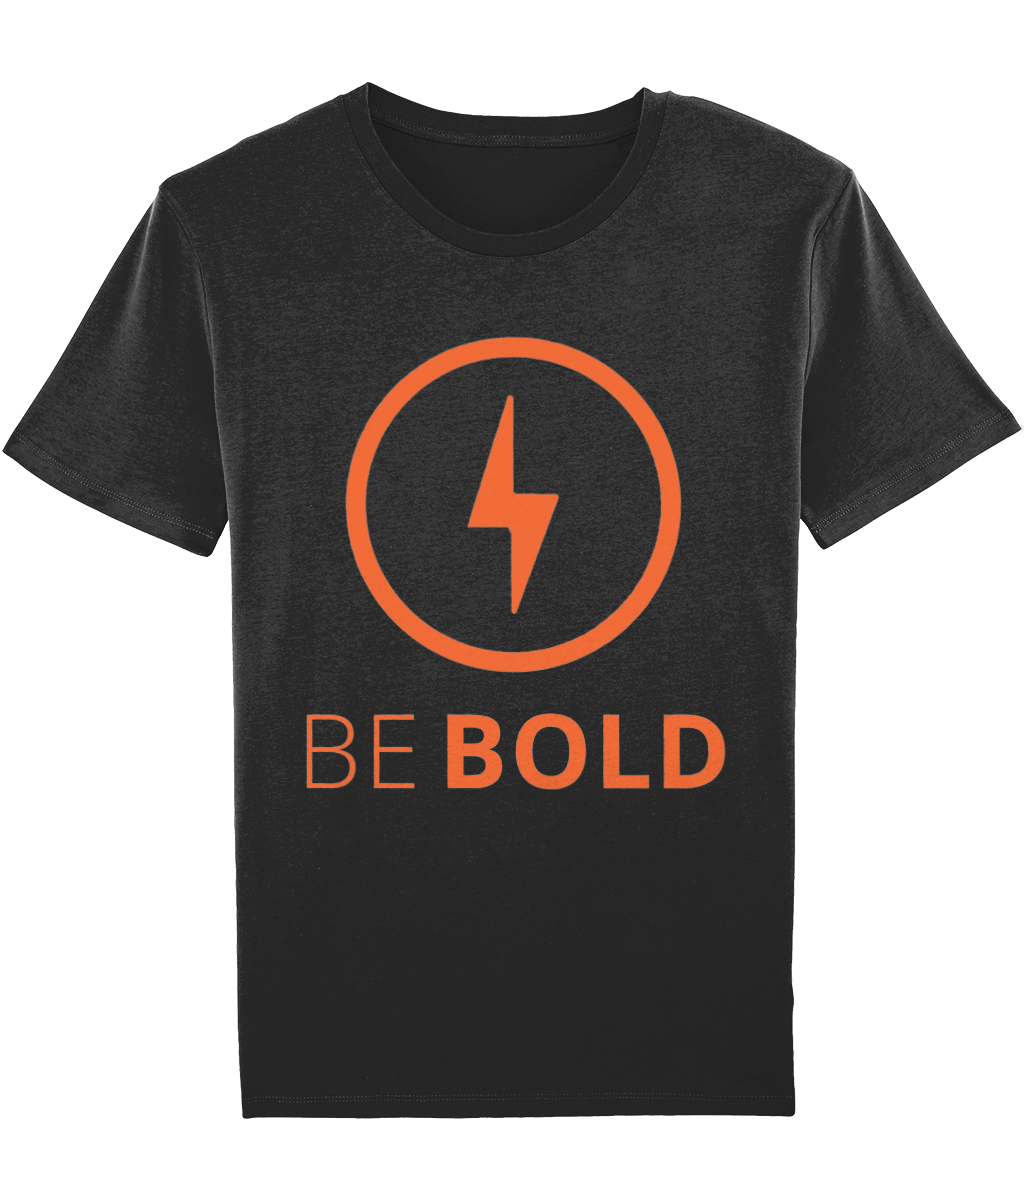 Men's Motivational t-shirt Be Bold